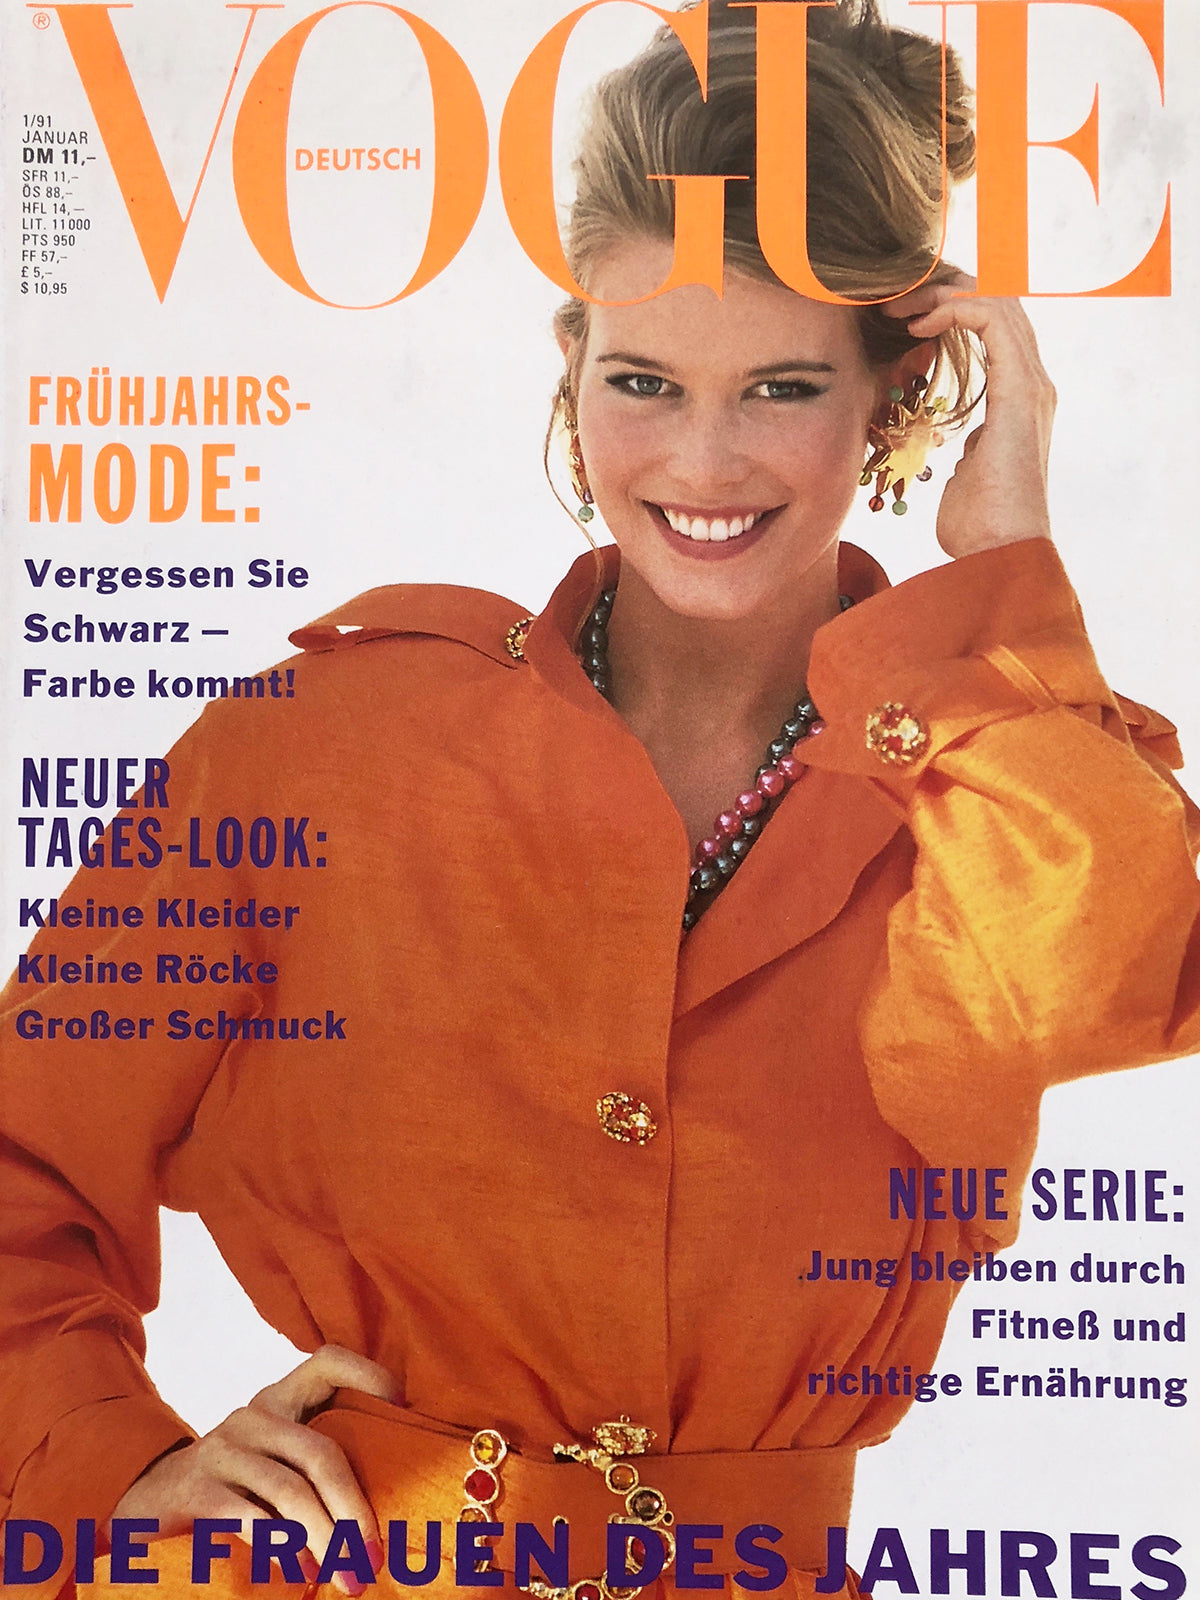 Archived - VOGUE Germany January 1991